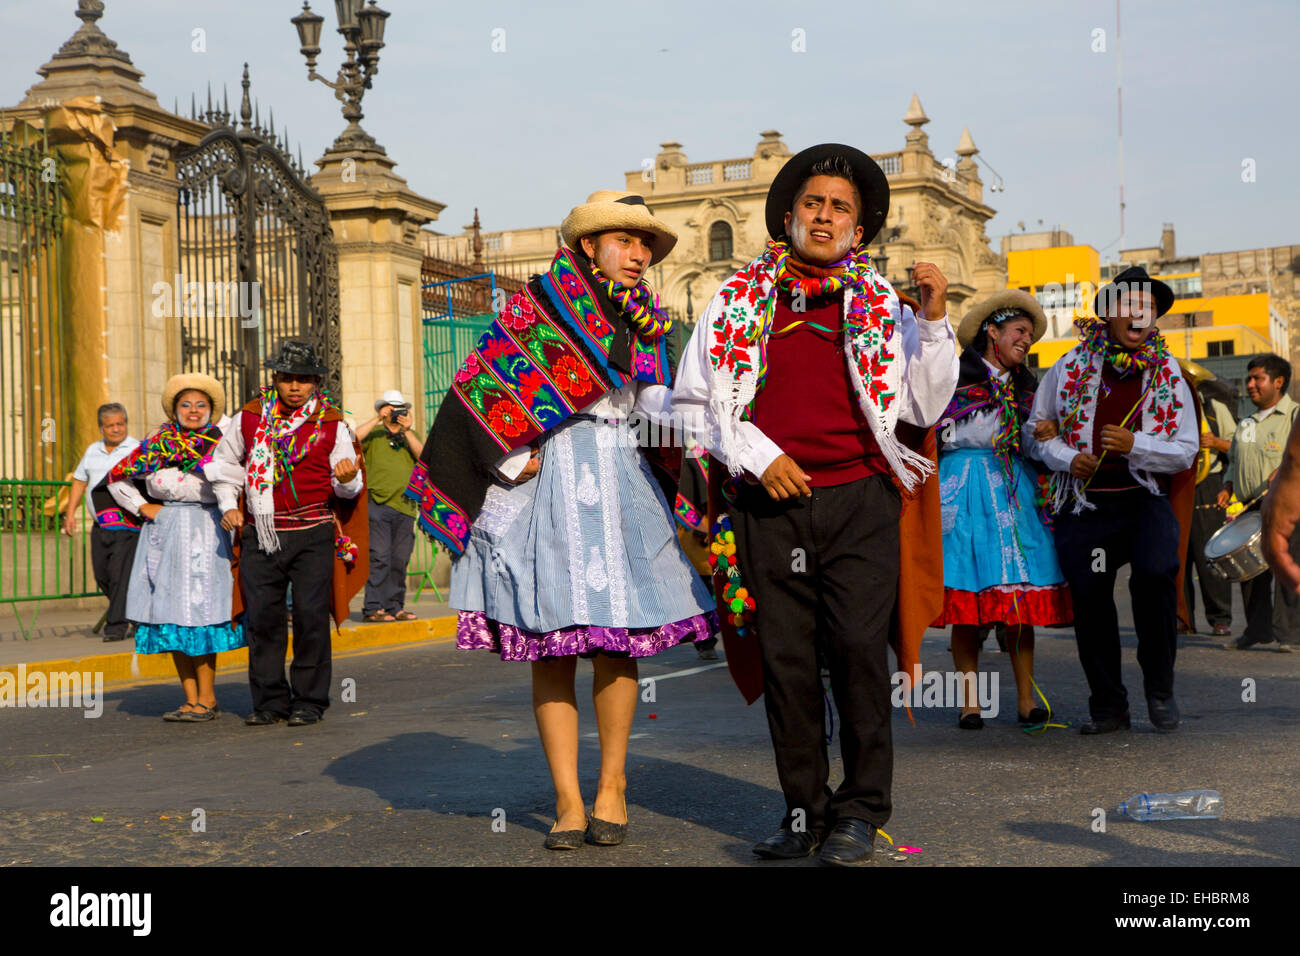 Carnival, Mardi Gras, Ciudad de los Reyes, Historic center of the city, Lima, Peru - Stock Image